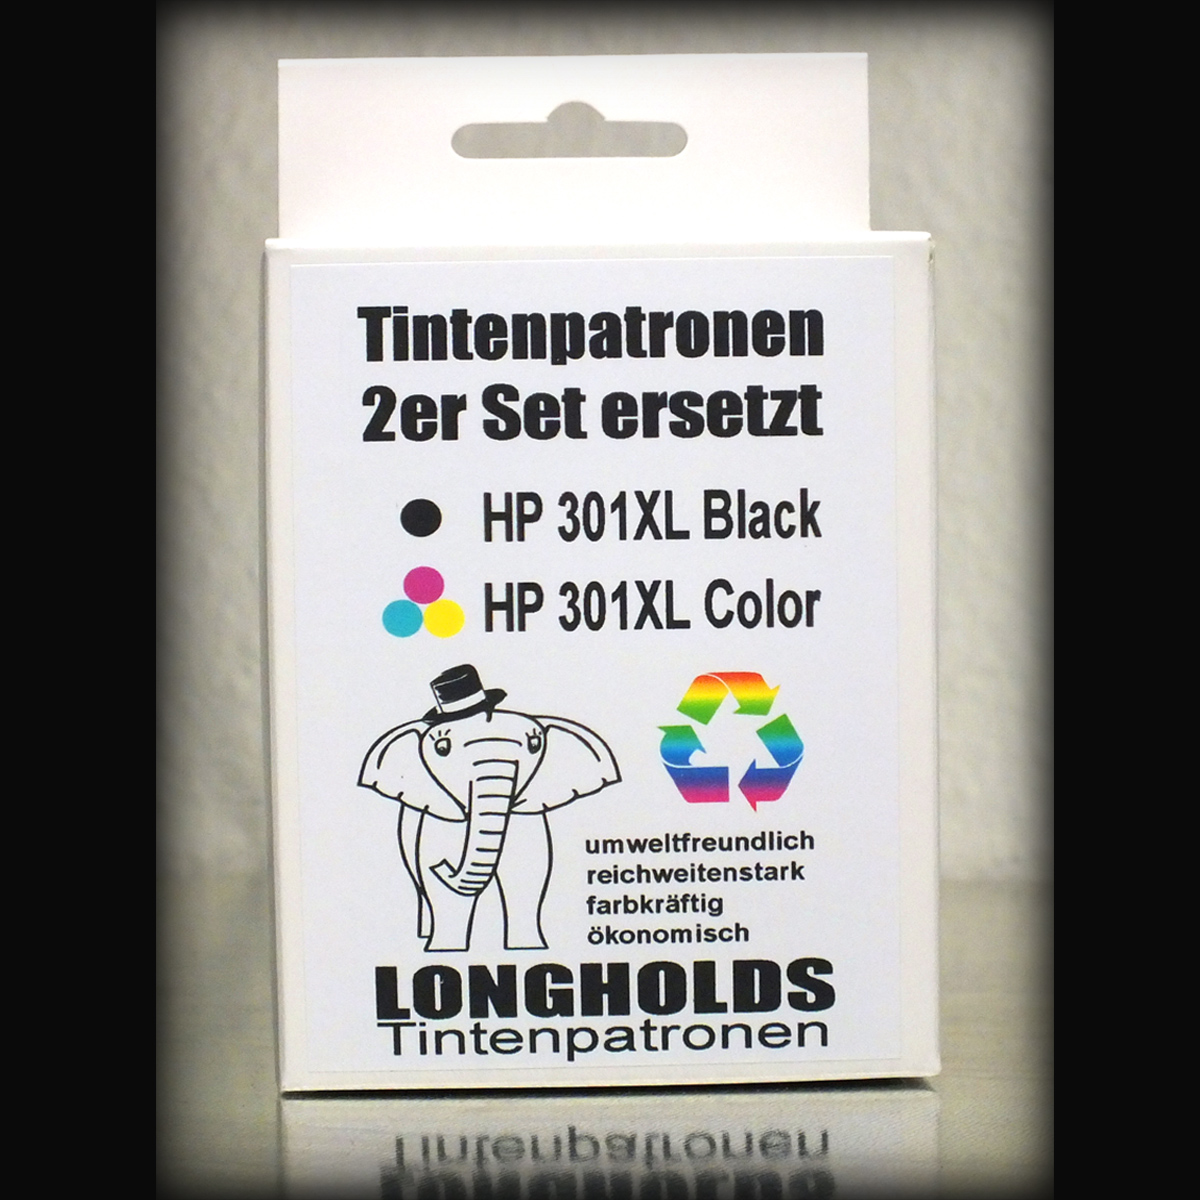 Longholds Tintenpatronen Set kompatibel zu HP 301XL Black & HP 301XL Color